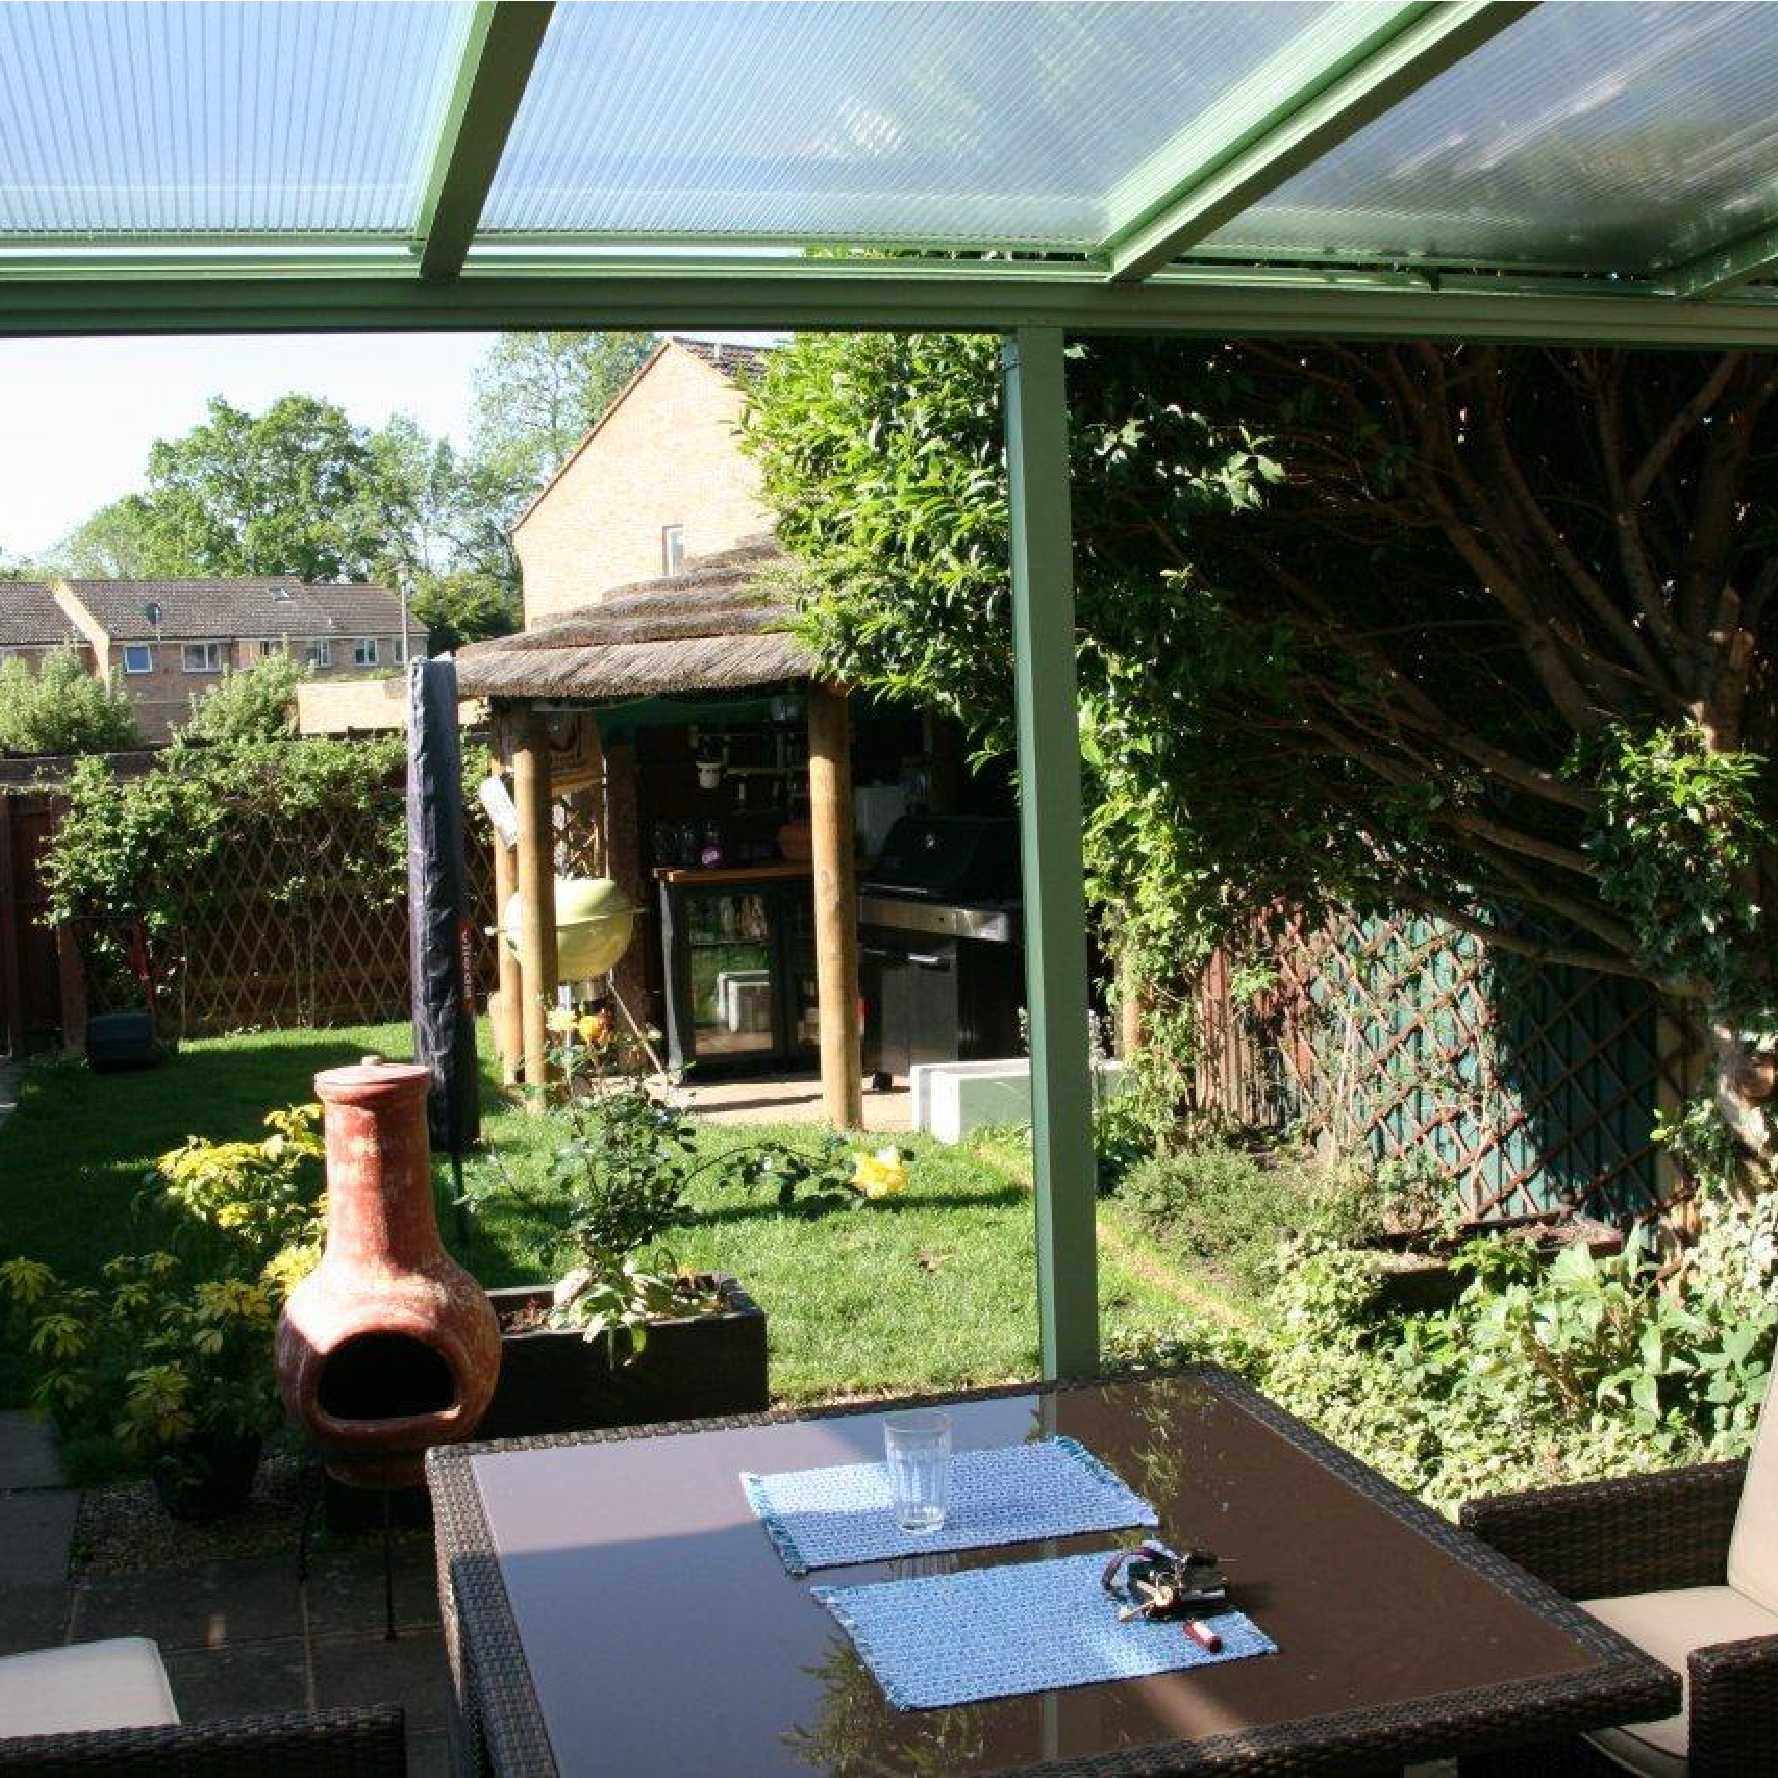 Affordable Omega Smart Lean-To Canopy with 16mm Polycarbonate Glazing - 7.4m (W) x 2.0m (P), (4) Supporting Posts